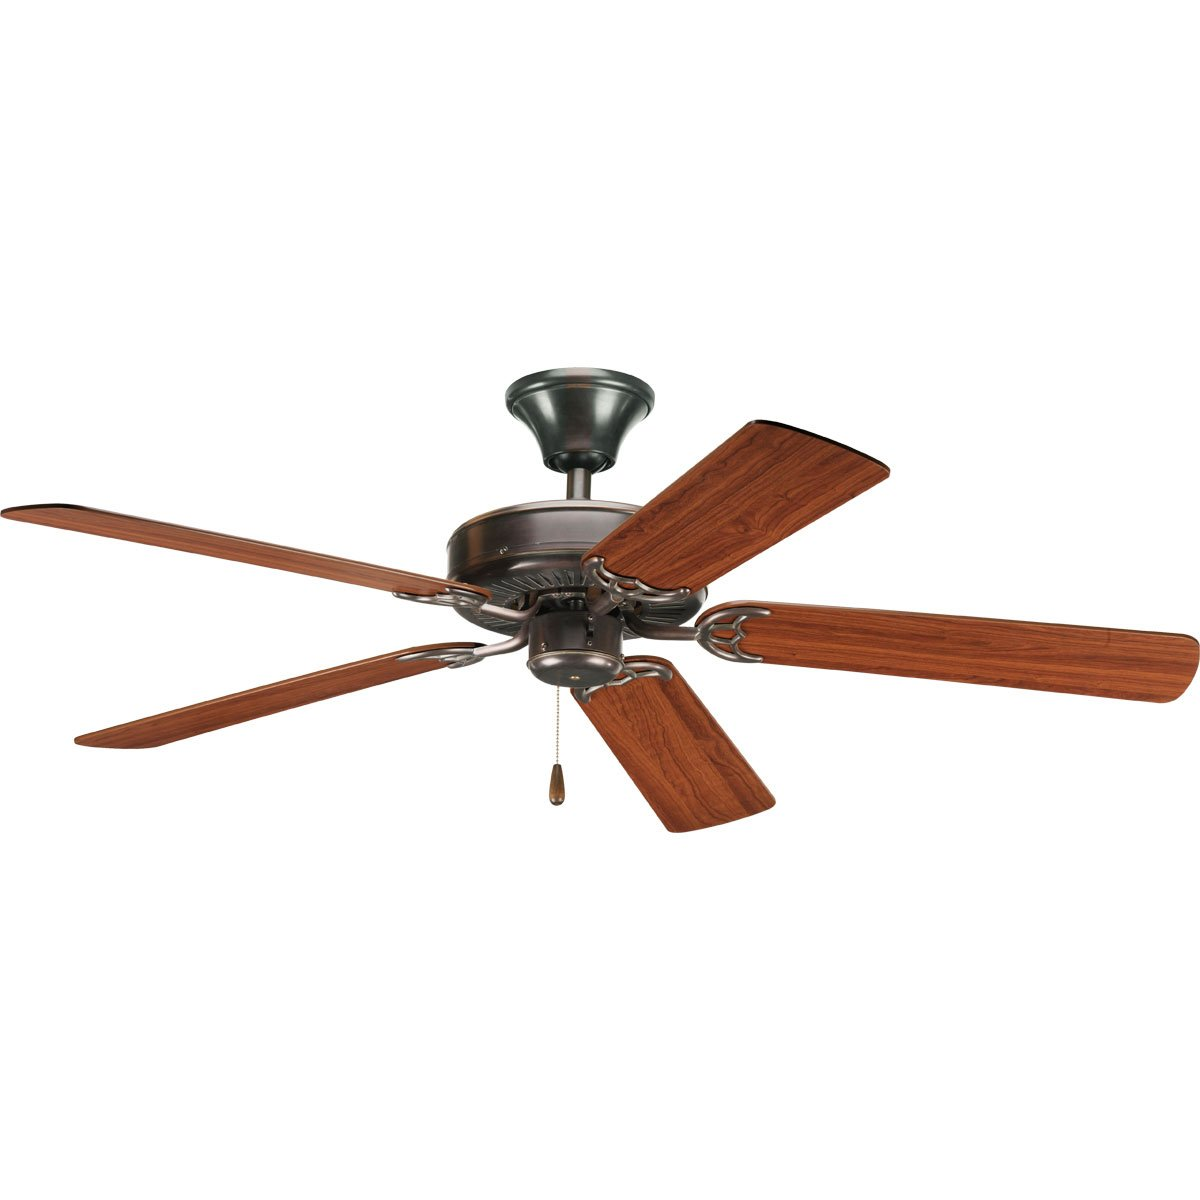 Progress Lighting P2501-20 52-Inch Fan with 5 Blades and 3-Speed Reversible Motor with Reversible Medium Cherry or Classic Walnut Blades, Antique Bronze by Progress Lighting